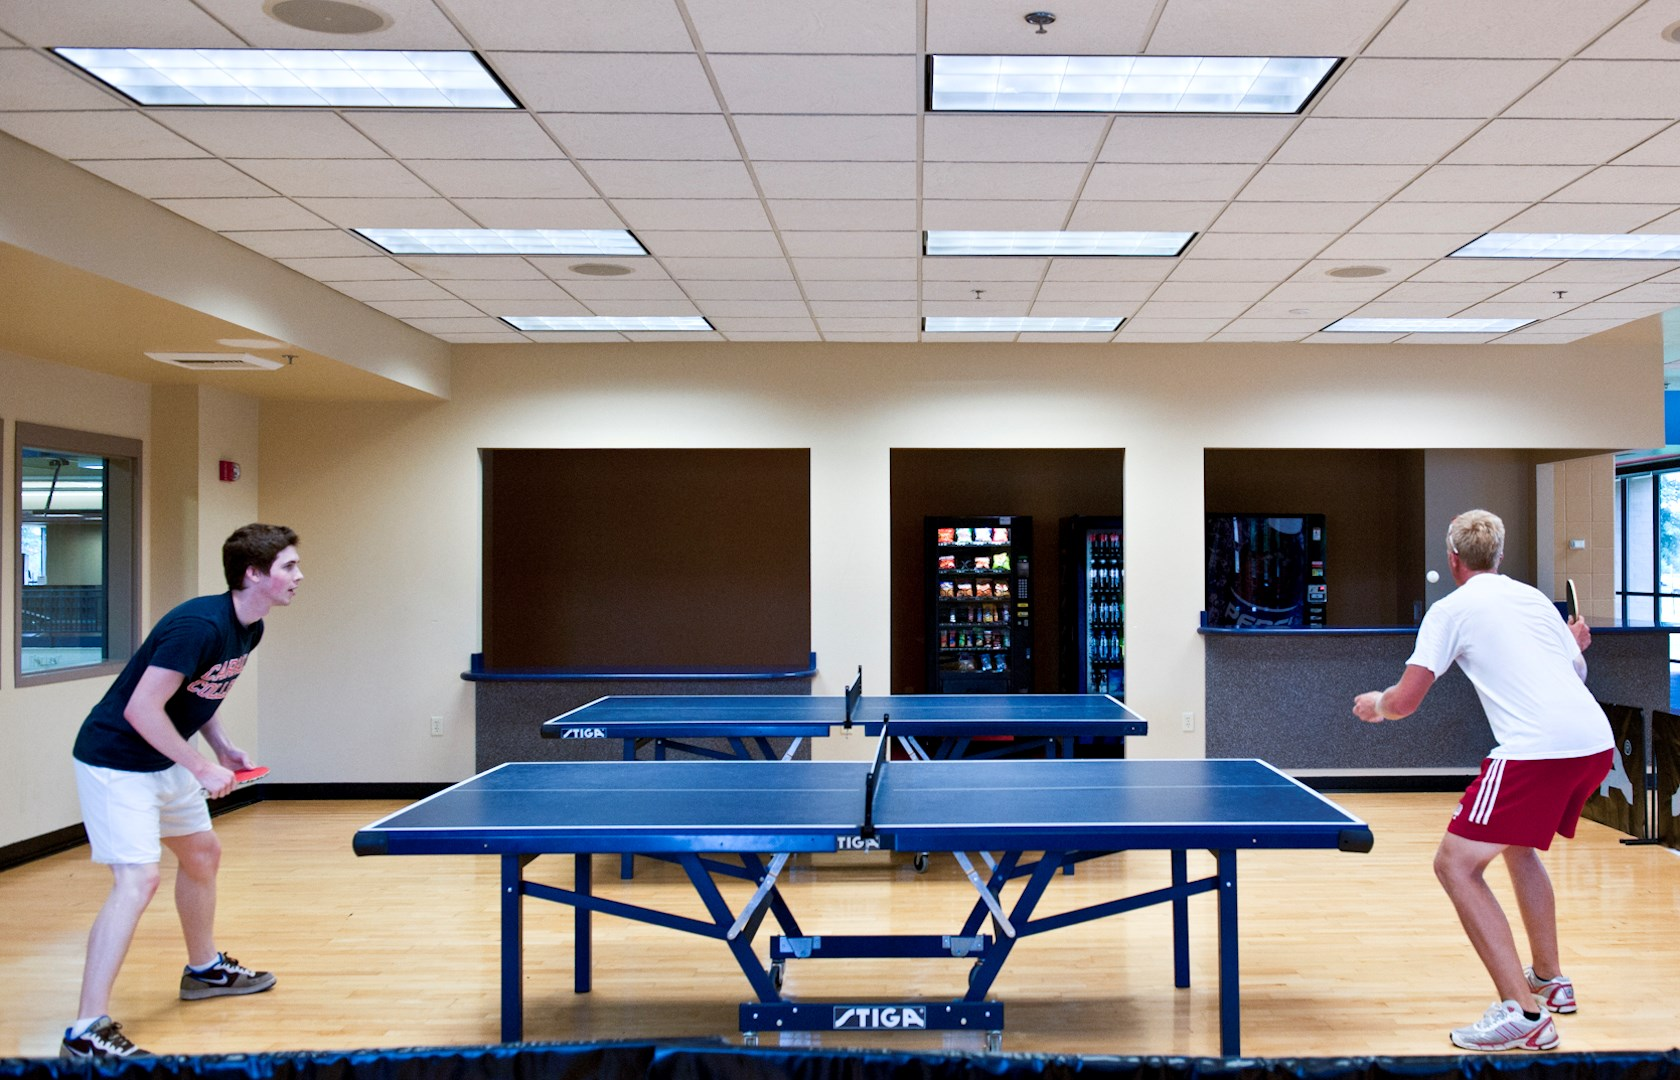 horiz_ping pong in Rec and Fit